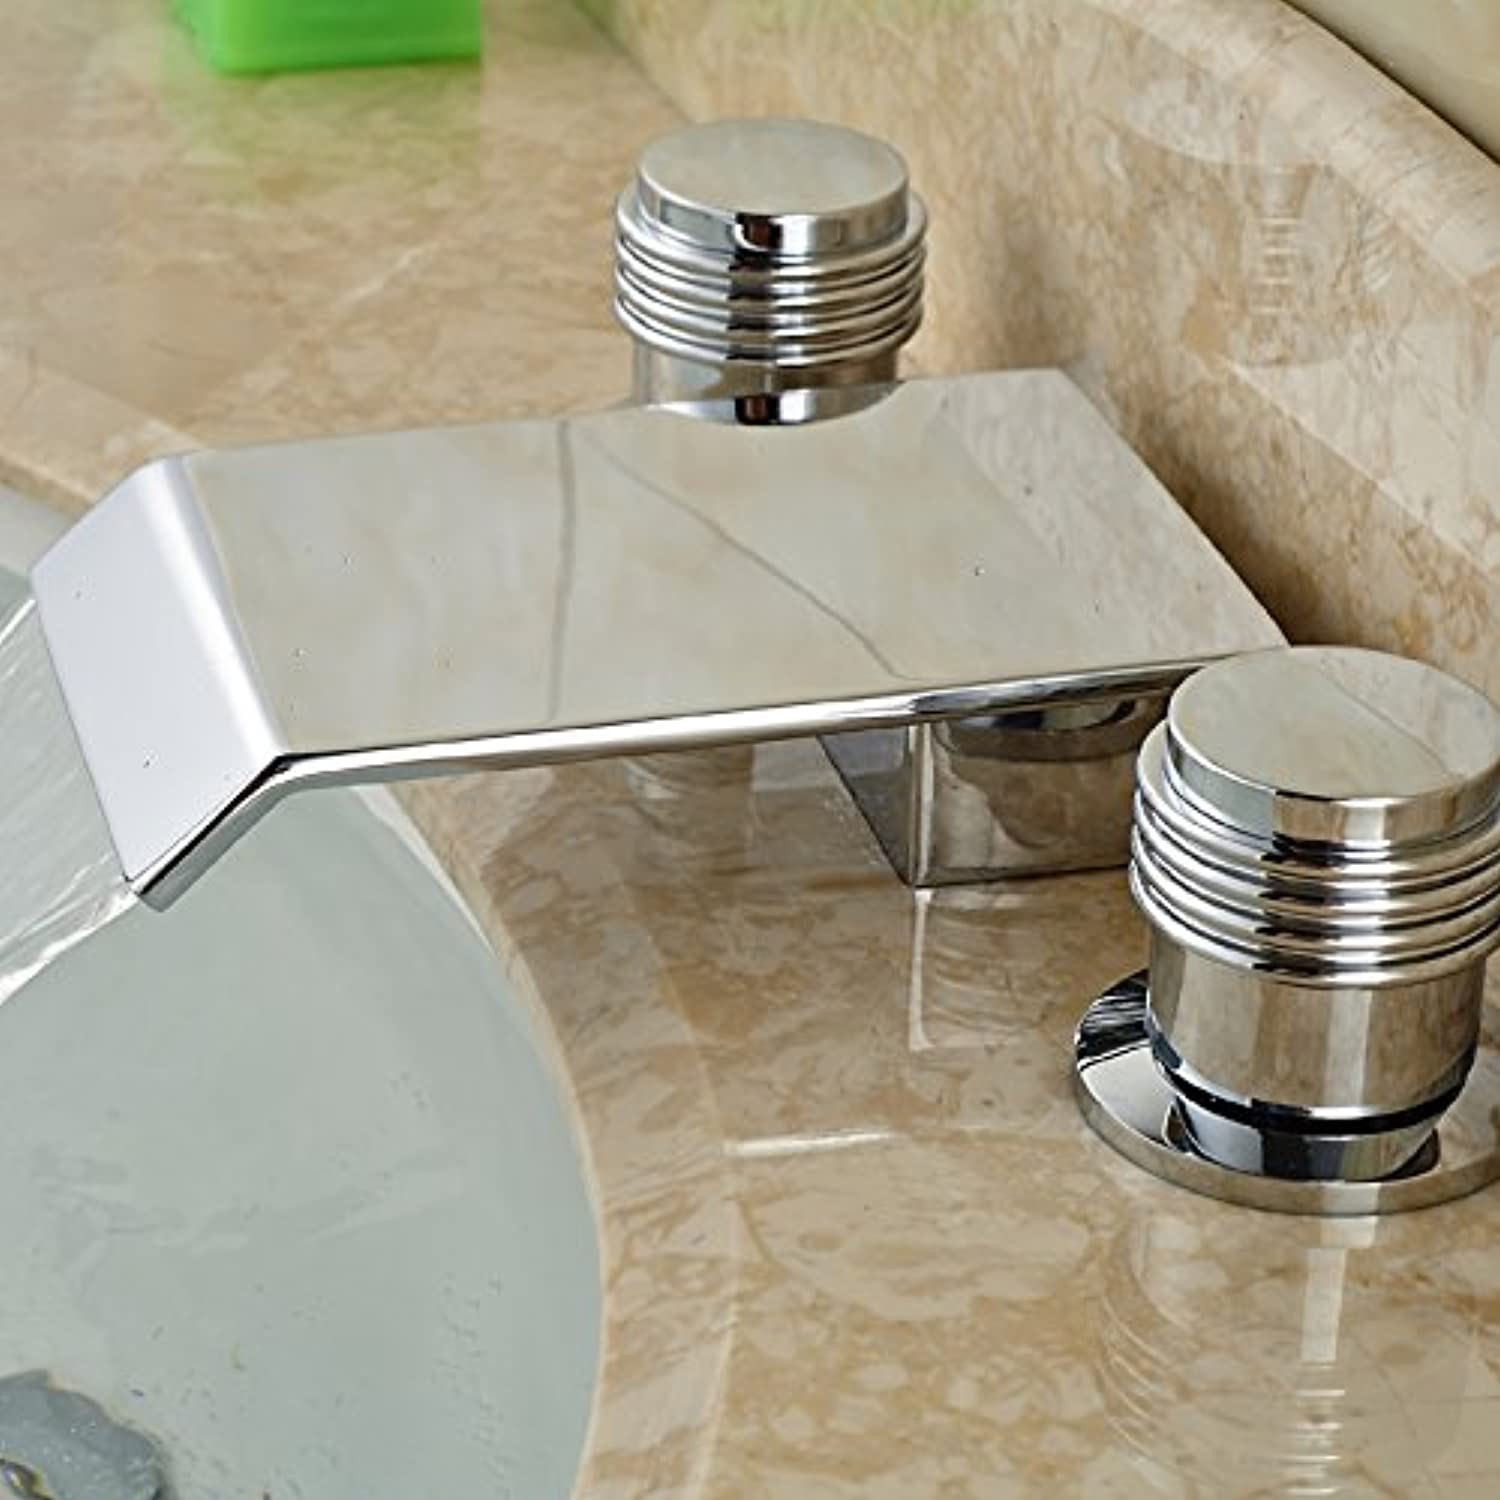 U-Enjoy Deck Mount Waterfall Top Quality Brass Spout Bathroom Widespread Sink Faucet Double Handles with Hot Cold Water (Free Shipping)